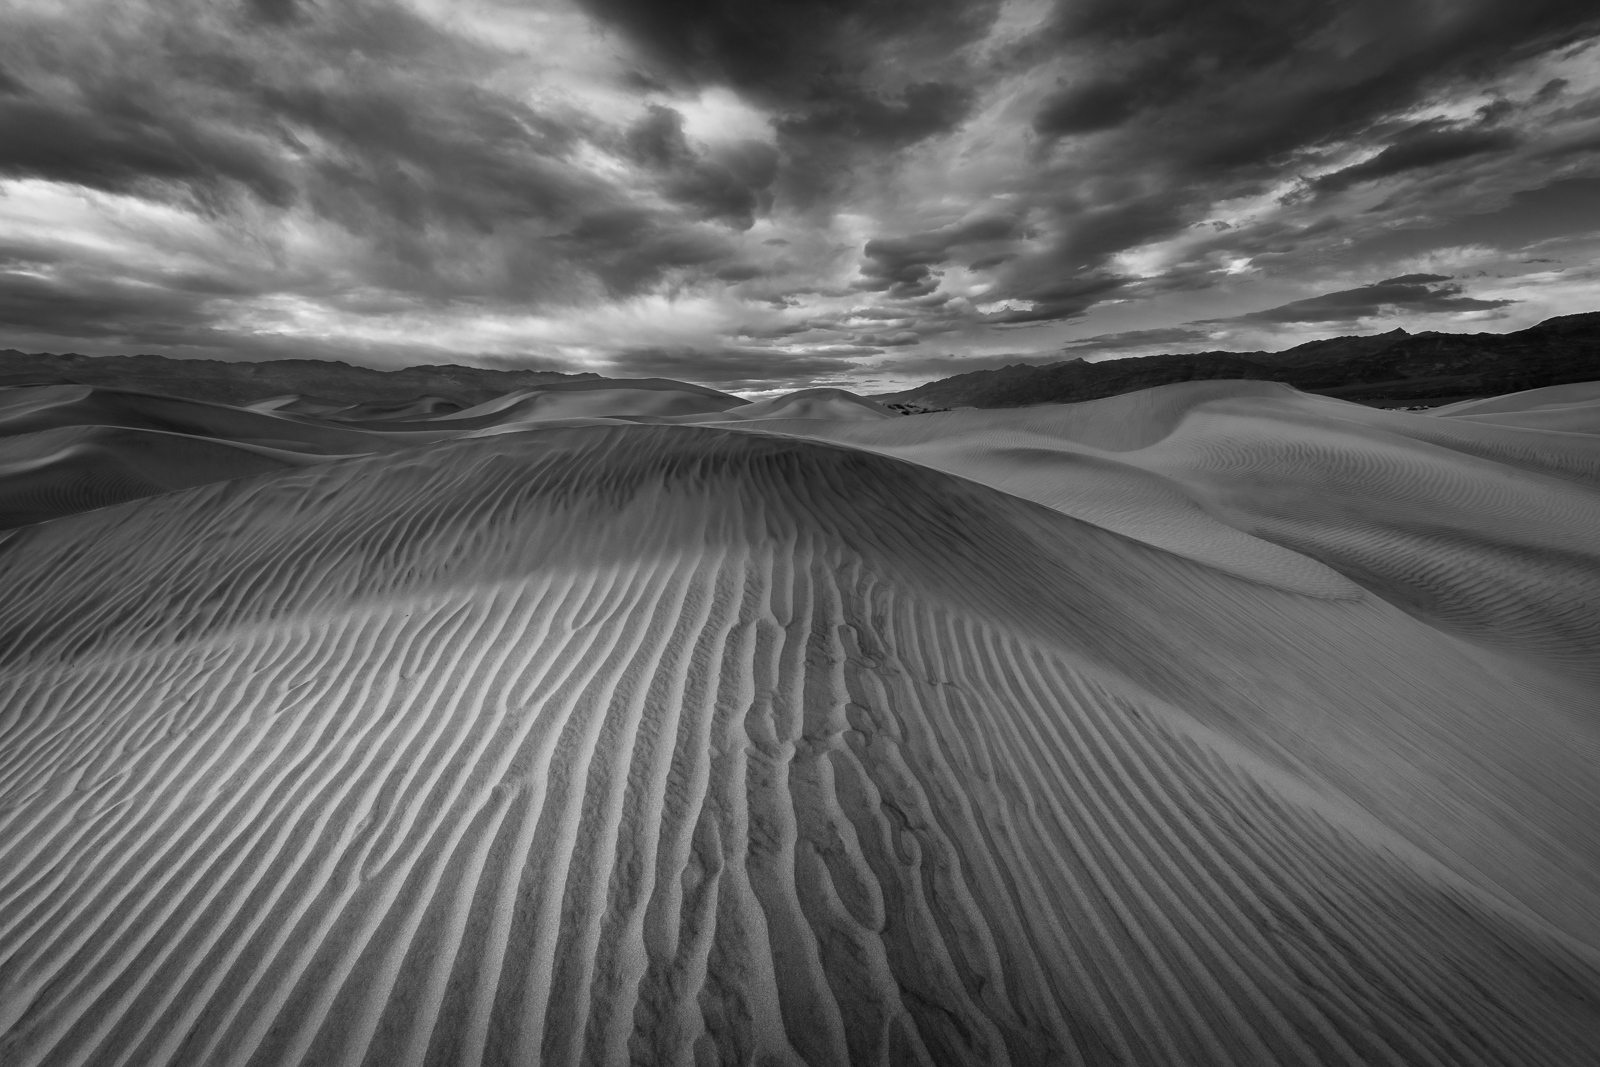 Approaching storm and high winds in Mesquite Sand Dunes, Death Valley National Park, California.